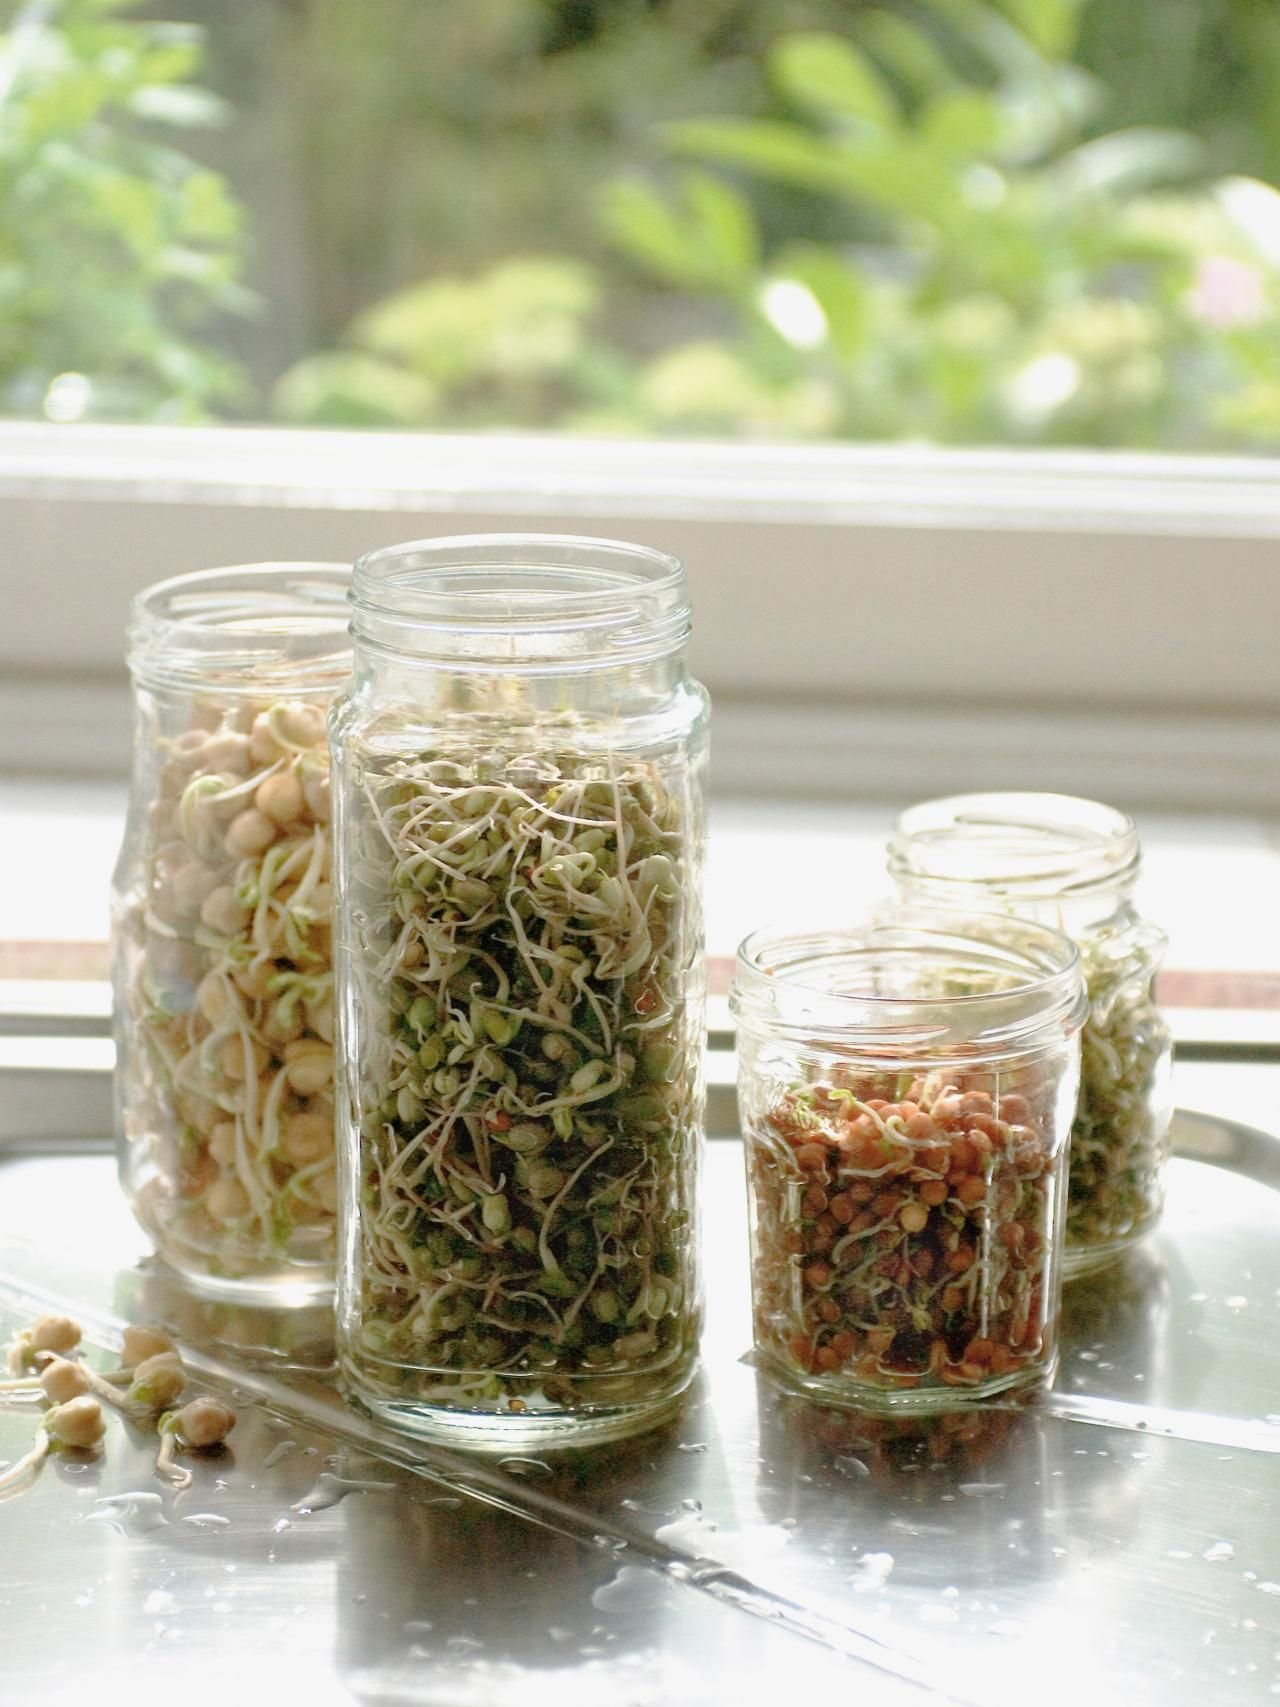 Grow Crunchy Sprouts Indoors Sprouting seeds, Growing